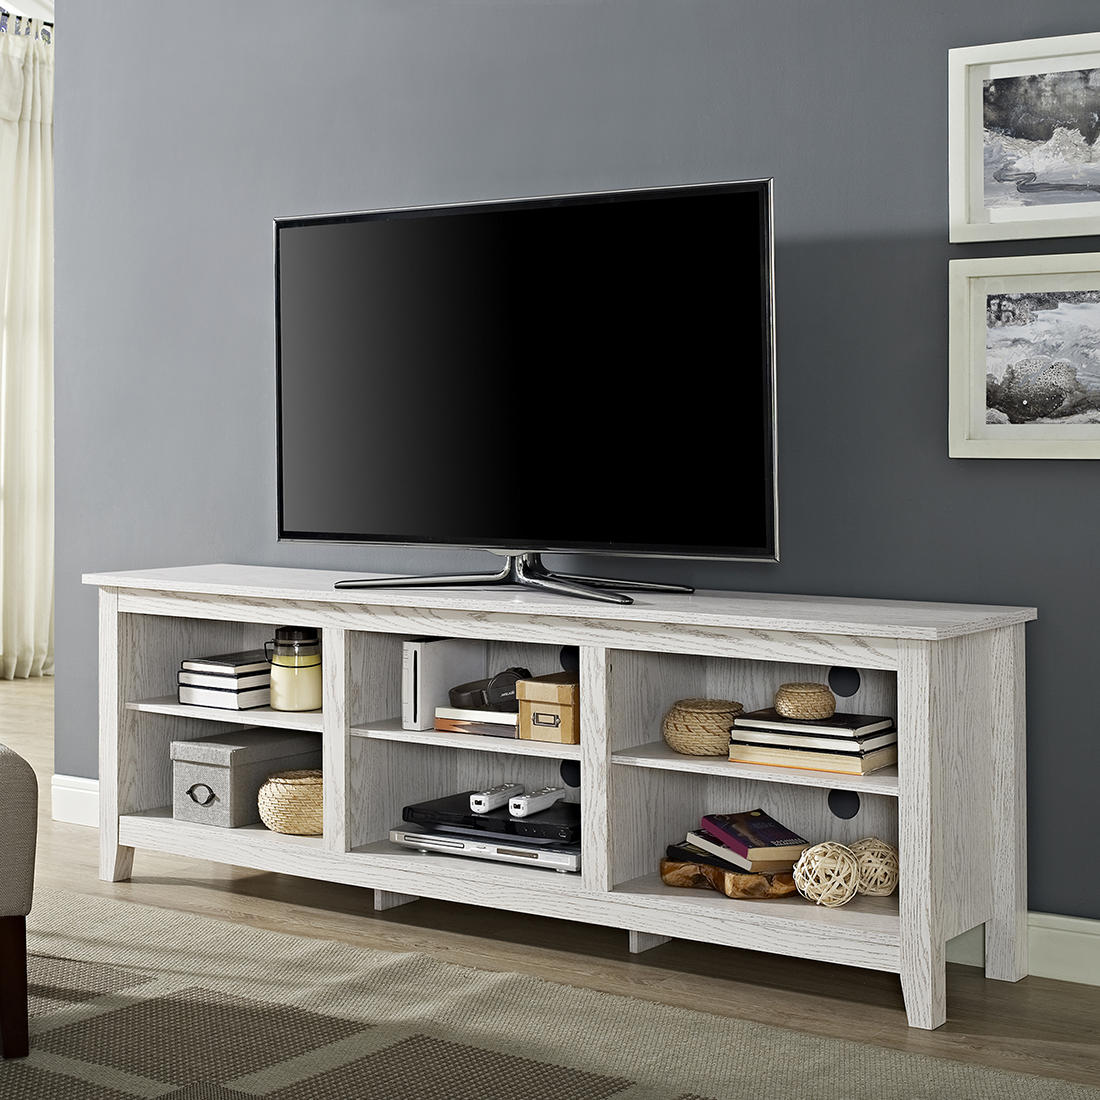 W Trends 70 Wood Media Tv Stand Storage Console For Tvs Up To 70 White Wash Bjs Wholesale Club